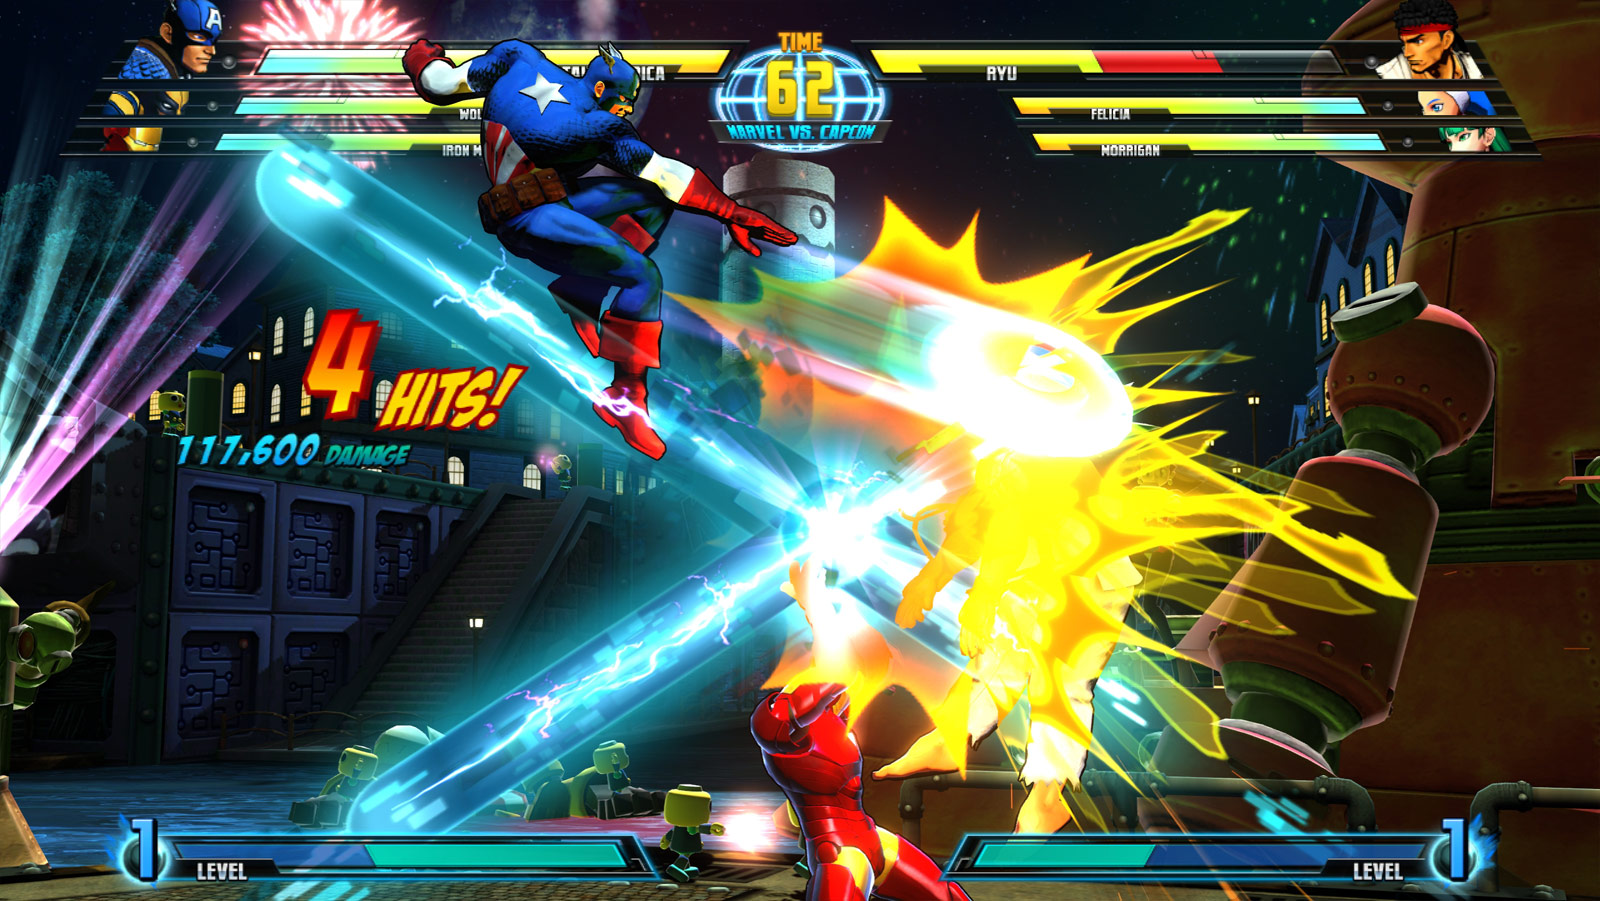 Marvel vs. Capcom 3 screen shot from E3 image #4